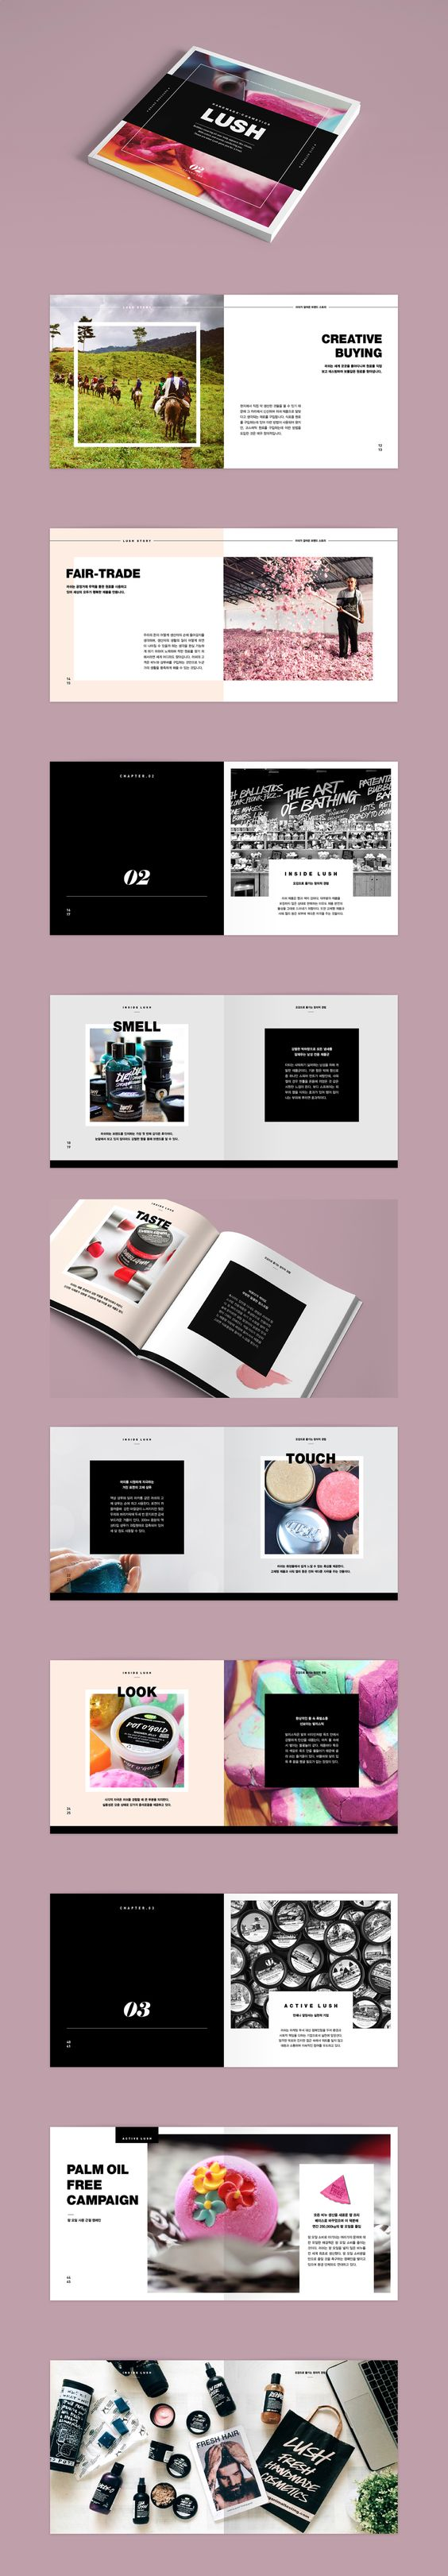 Lush traditional catalogue design example